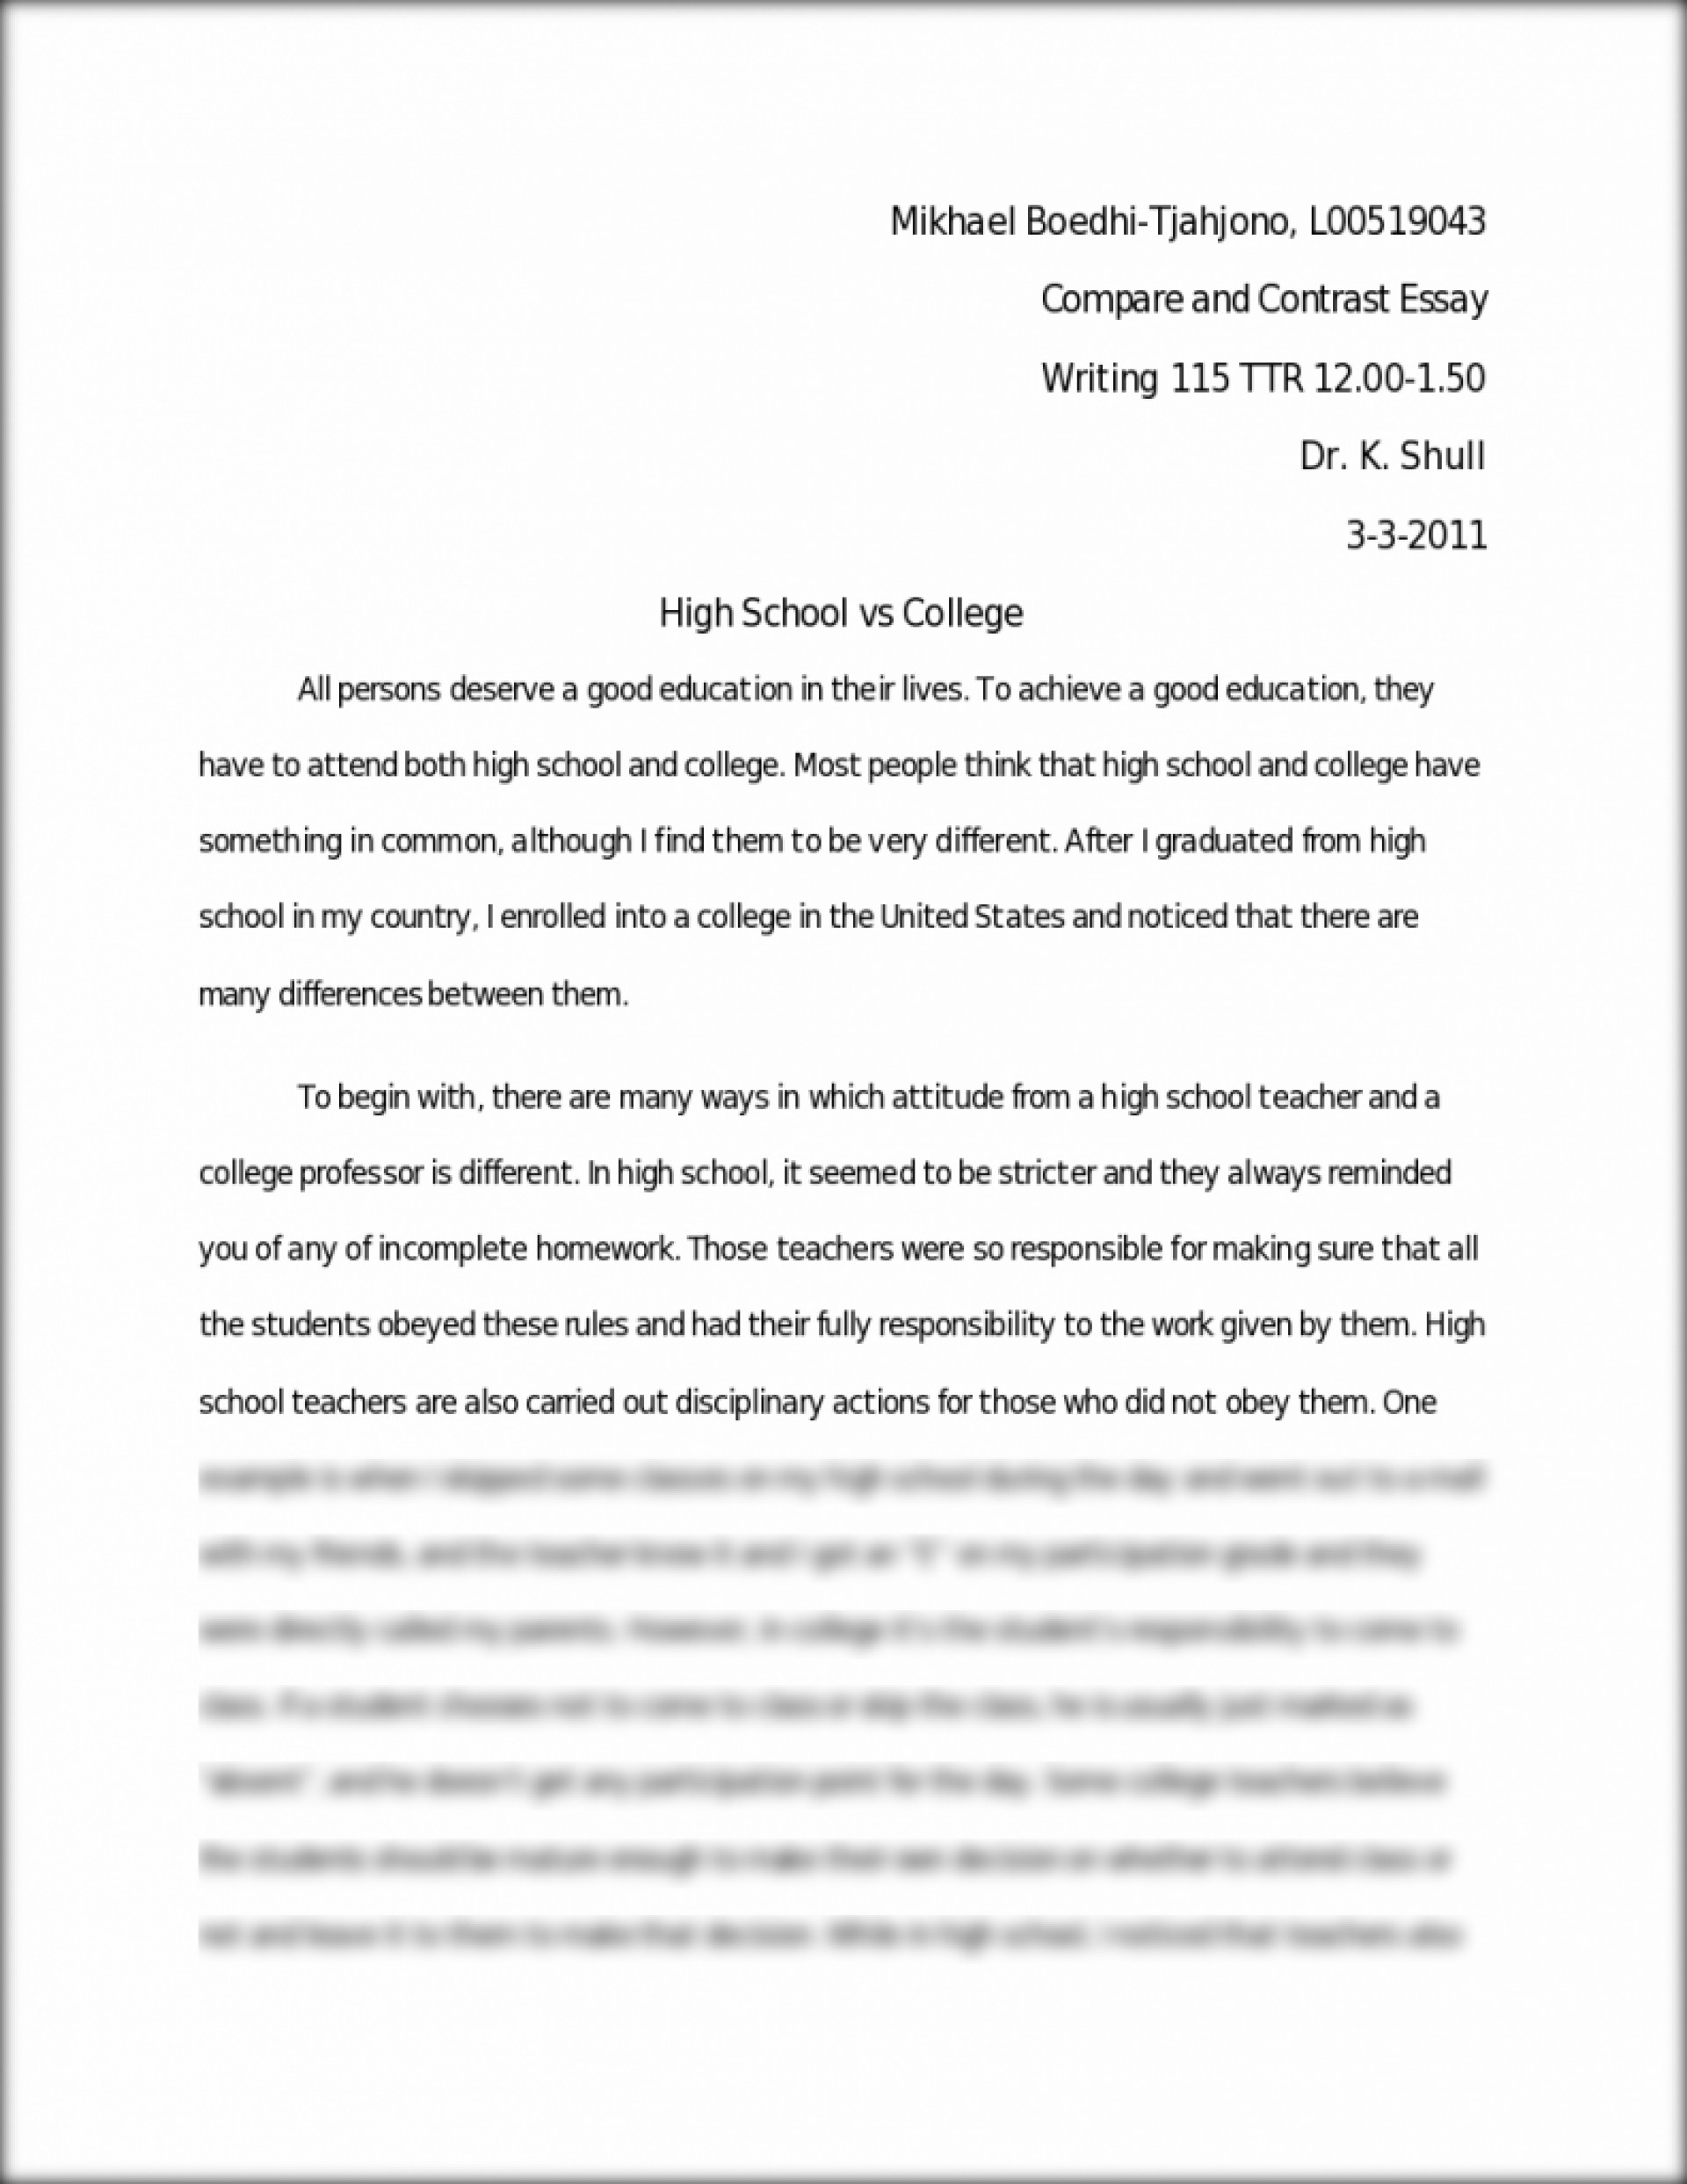 009 Compare Essay Contrast High School Vs College Practice Makes Coursework Academic And Comparison Life Beautiful Topics Ielts Examples Middle 1920